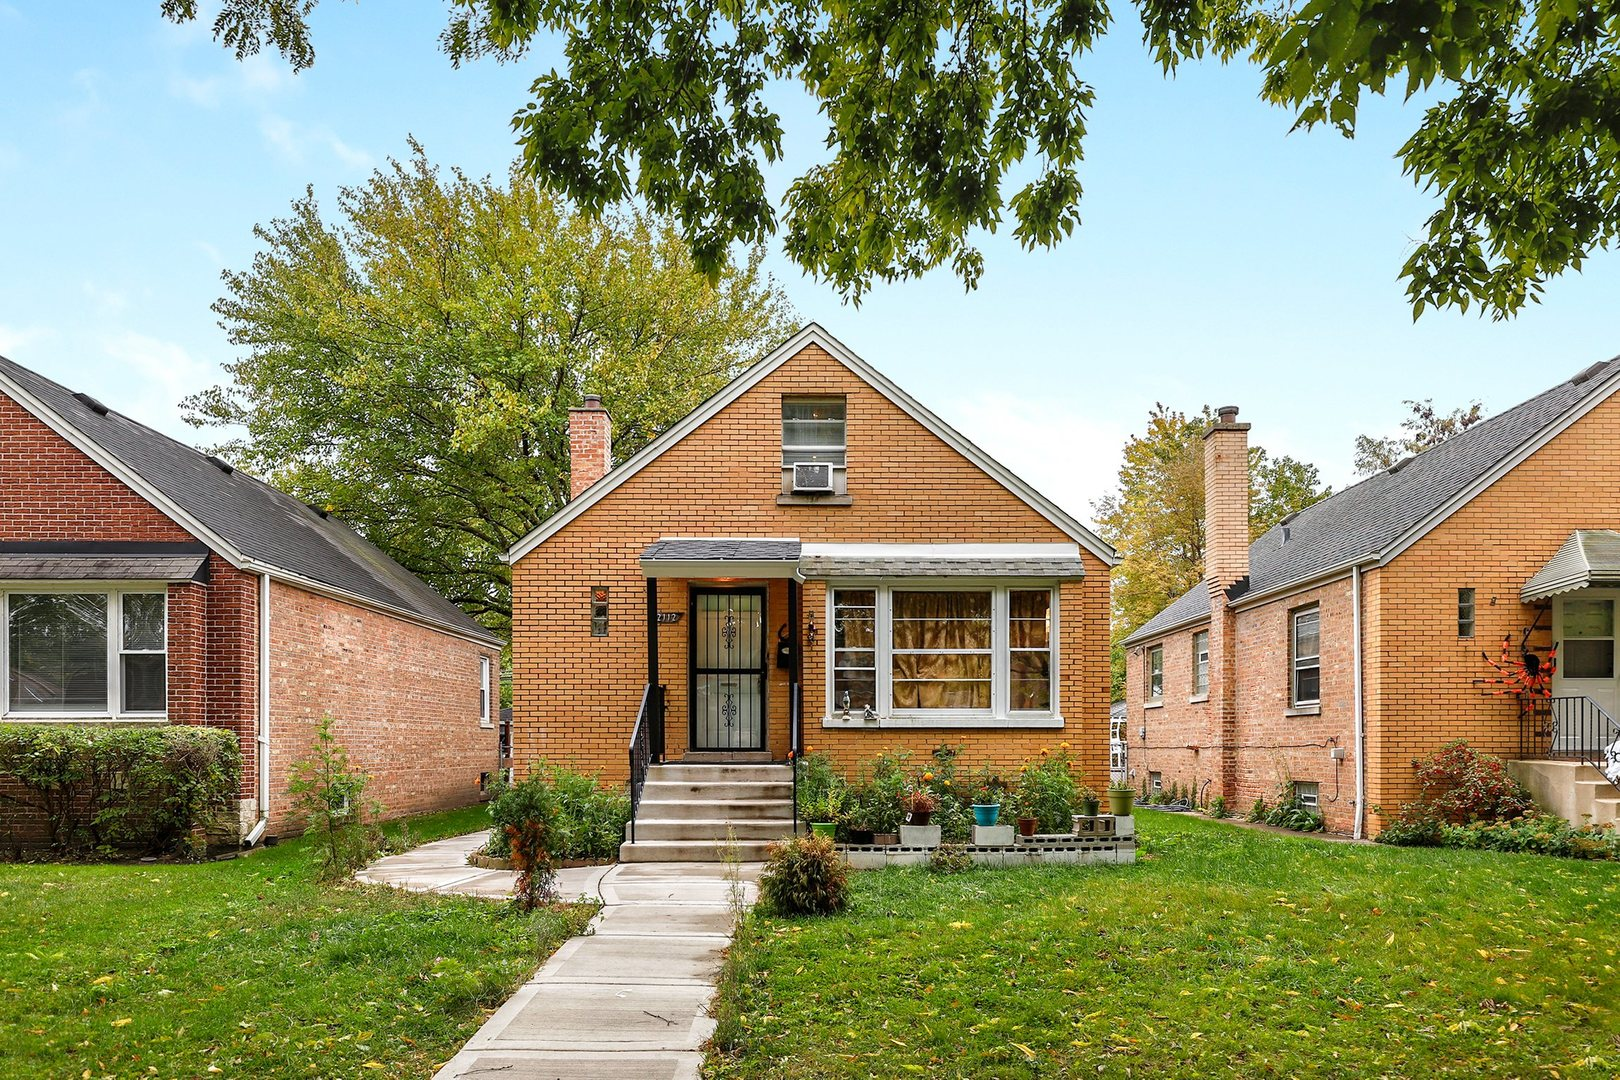 2112 Brummel Street, Evanston in Cook County, IL 60202 Home for Sale